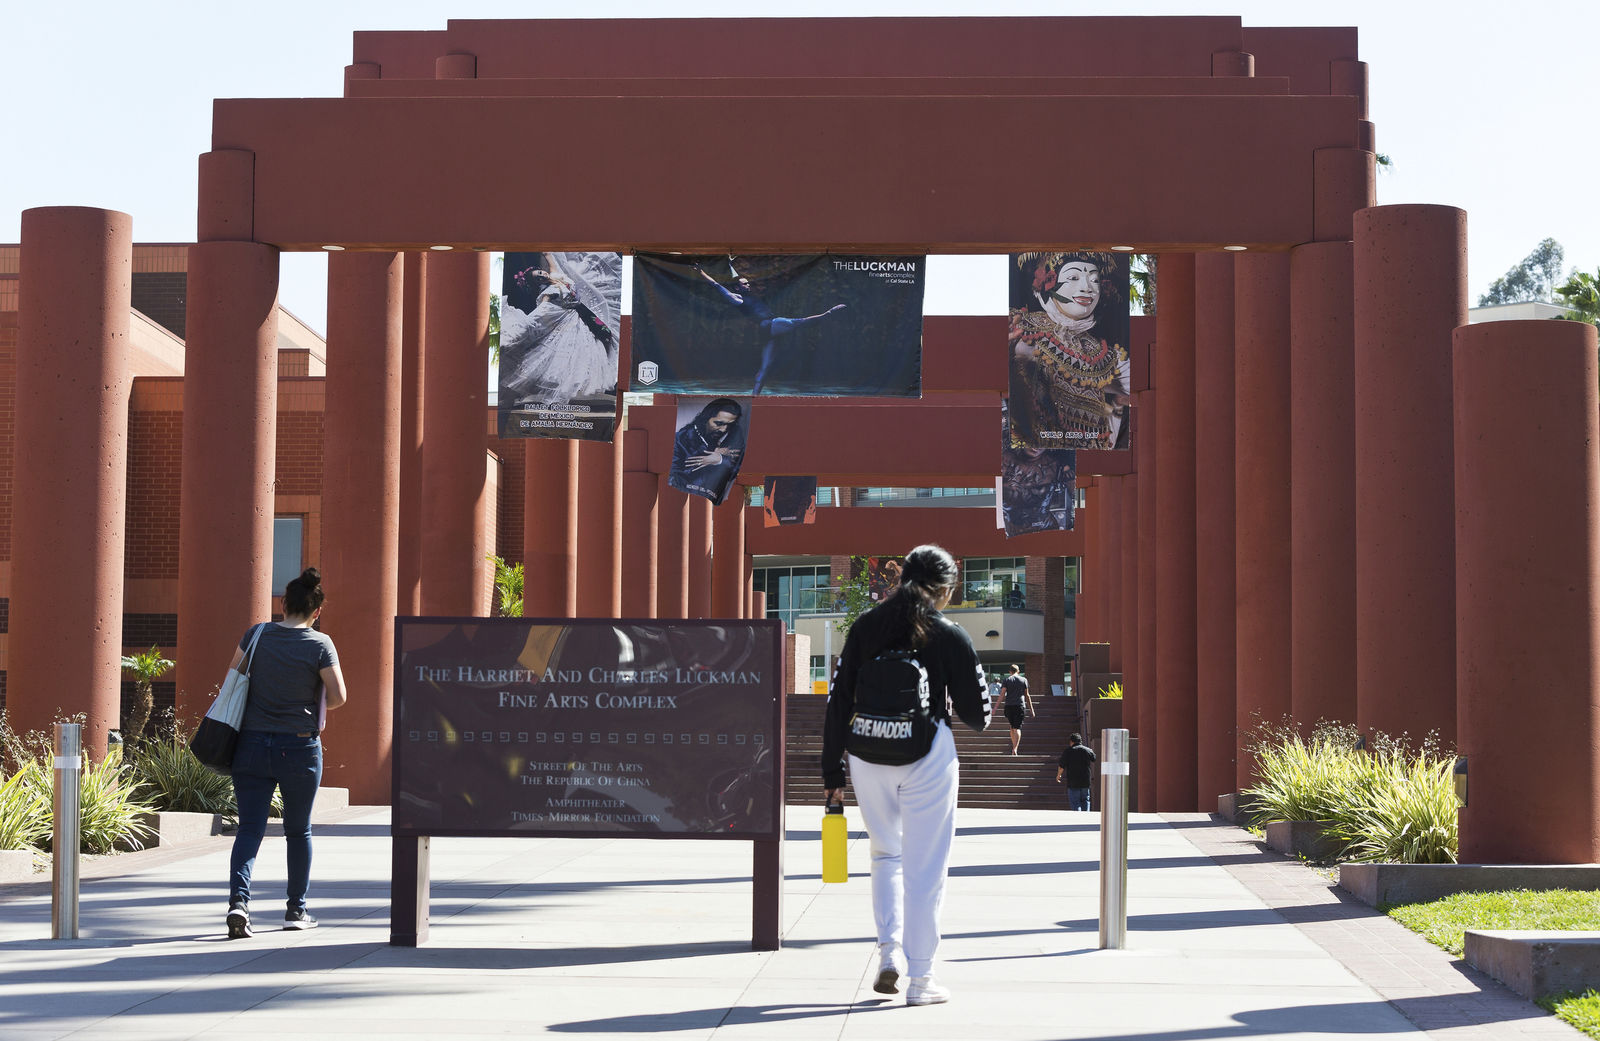 Students walk past the Harriet and Charles Luckman Fine Arts Complex at the The Cal State University, Los Angeles campus Thursday, April 25, 2019. (AP Photo/Damian Dovarganes)